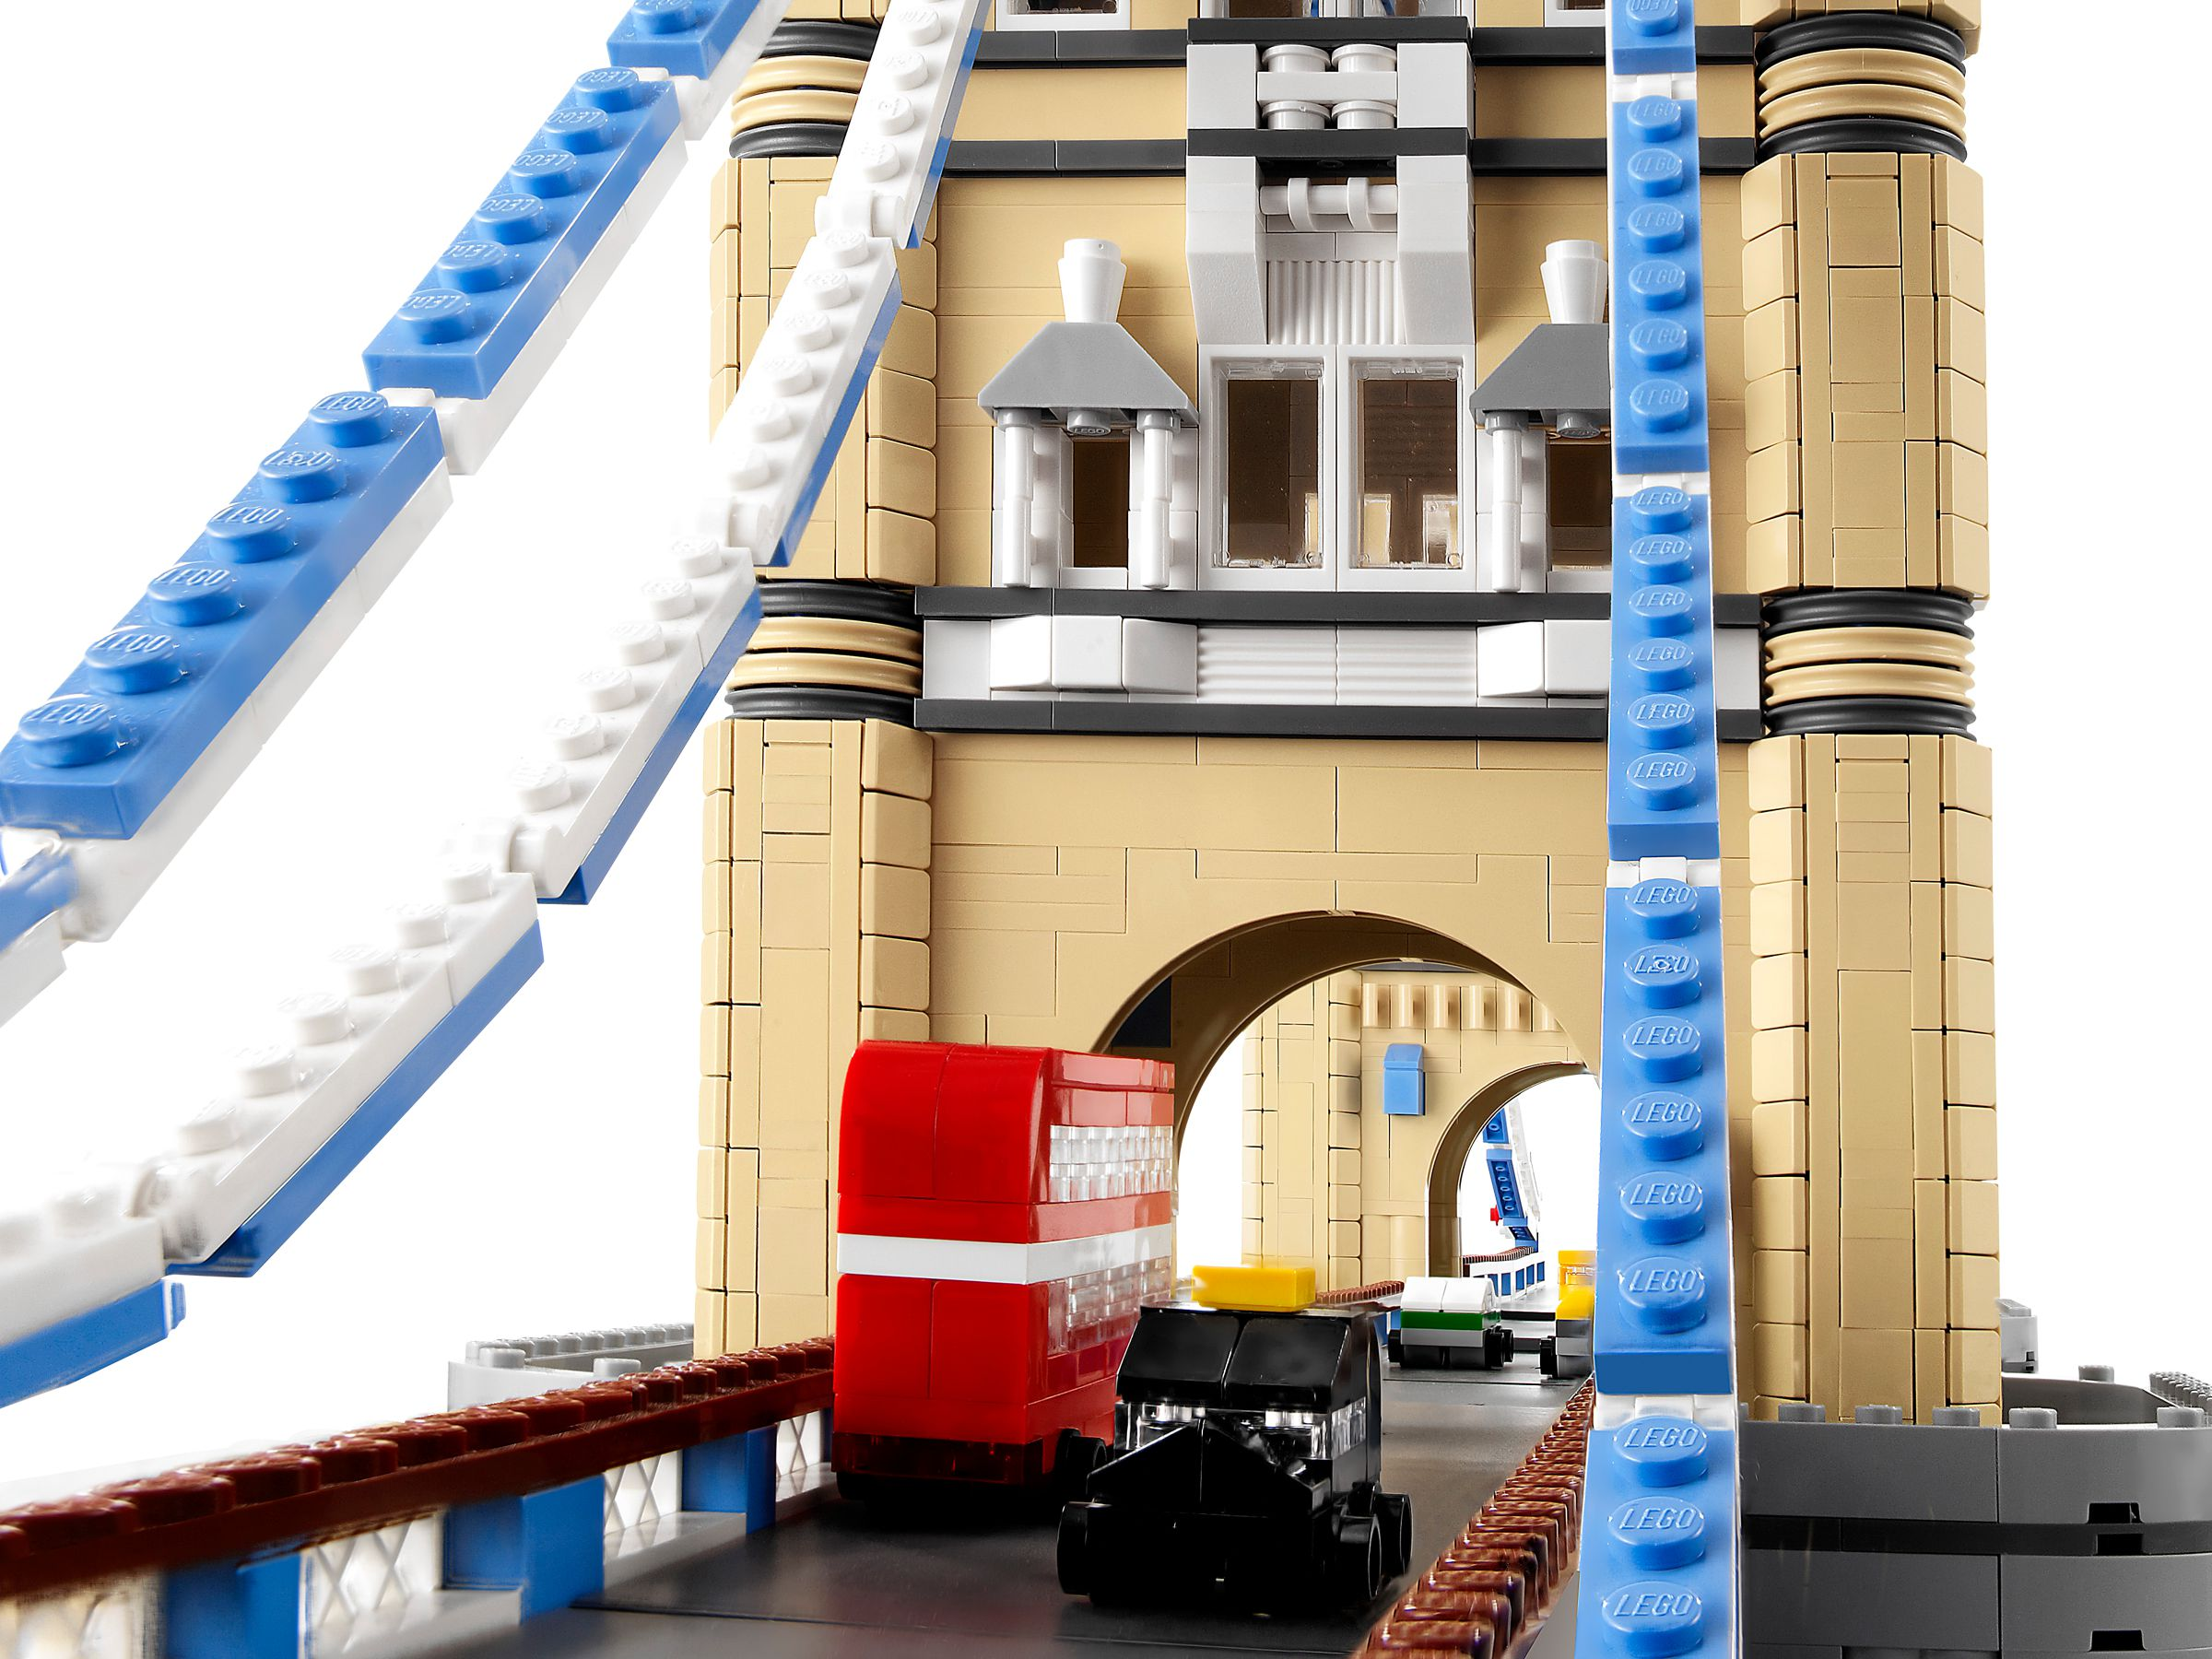 LEGO Advanced Models 10214 Tower Bridge LEGO_10214_alt6.jpg